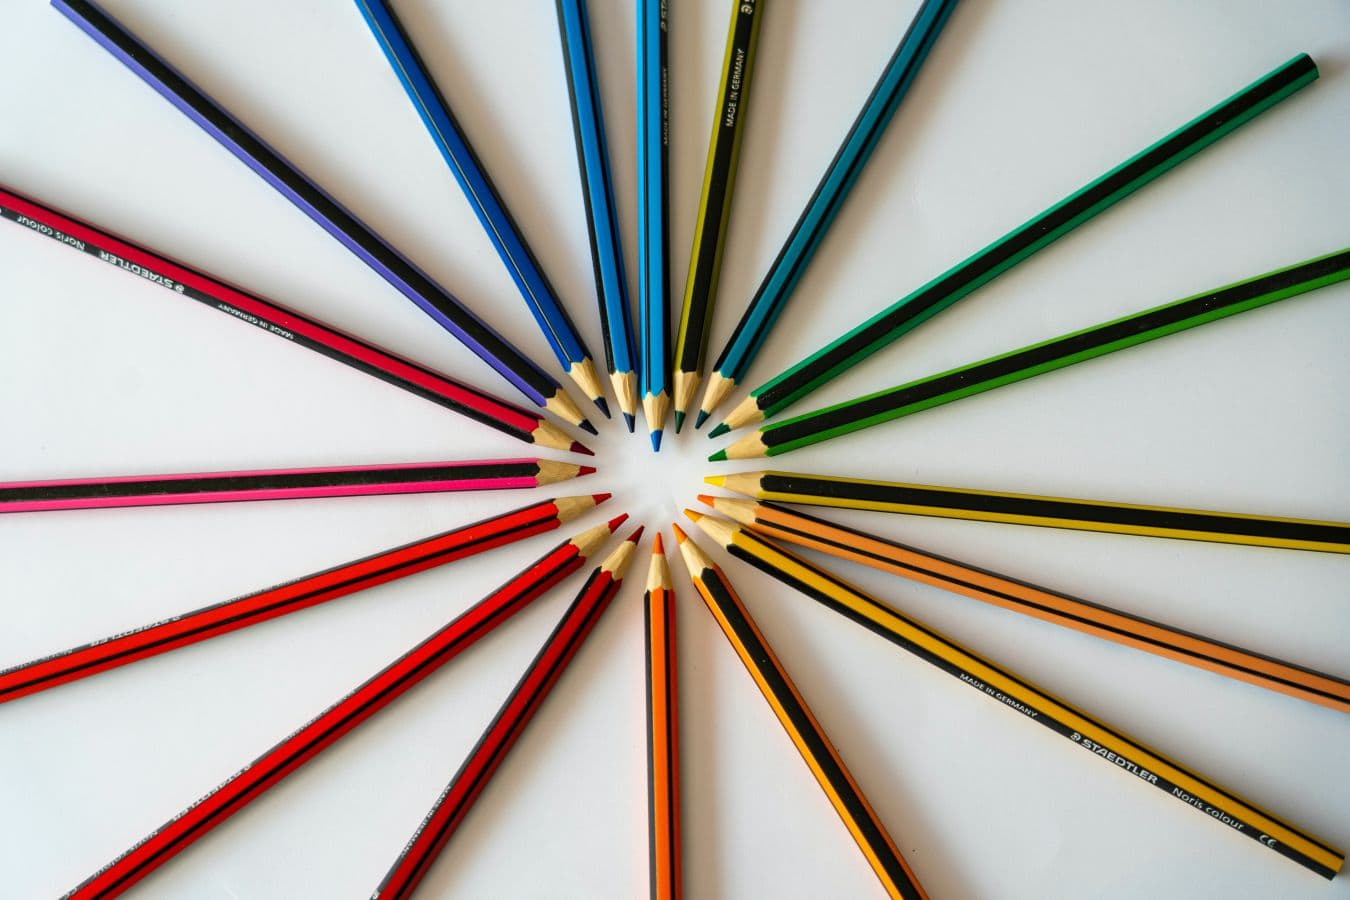 Colour in Branding and Design